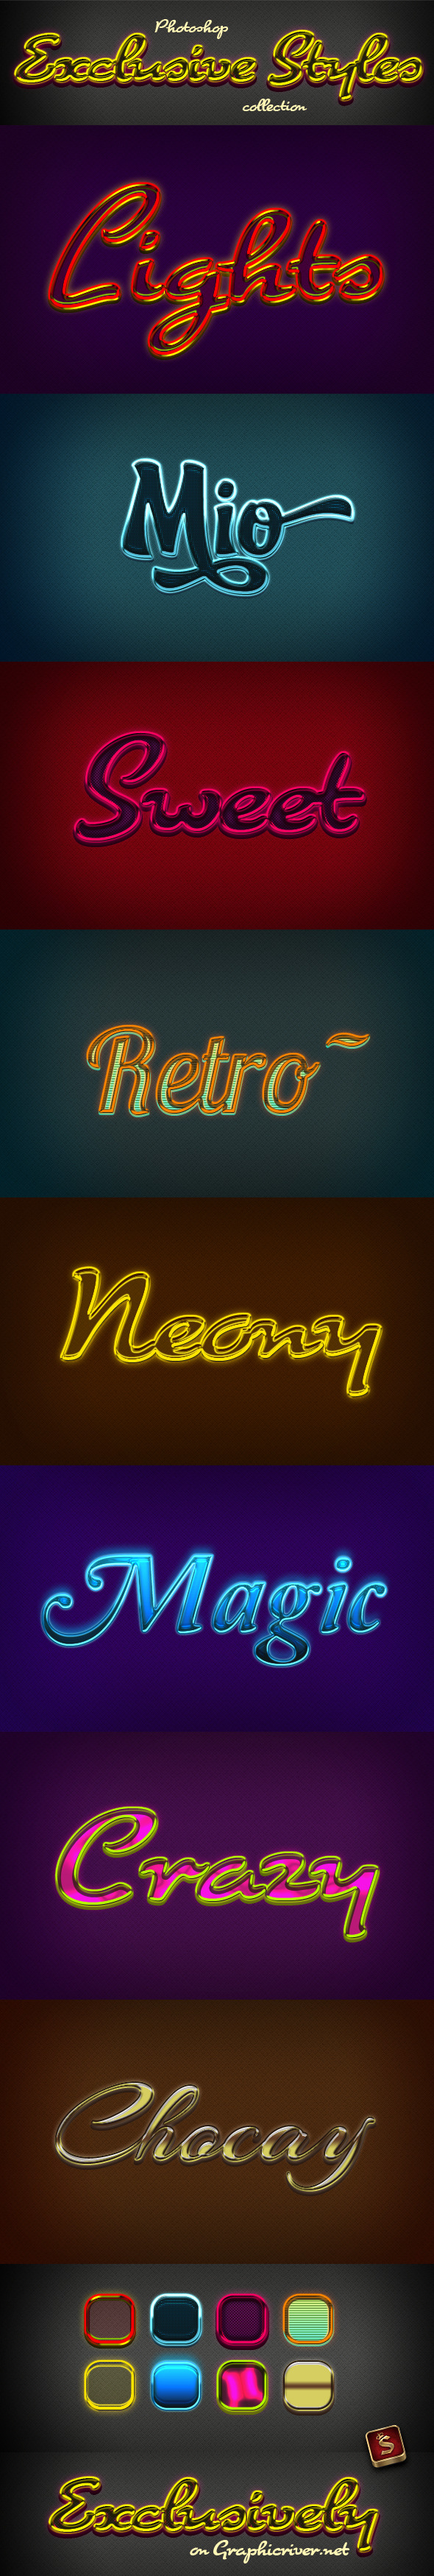 Exclusive Photoshop Styles - Text Effects Styles